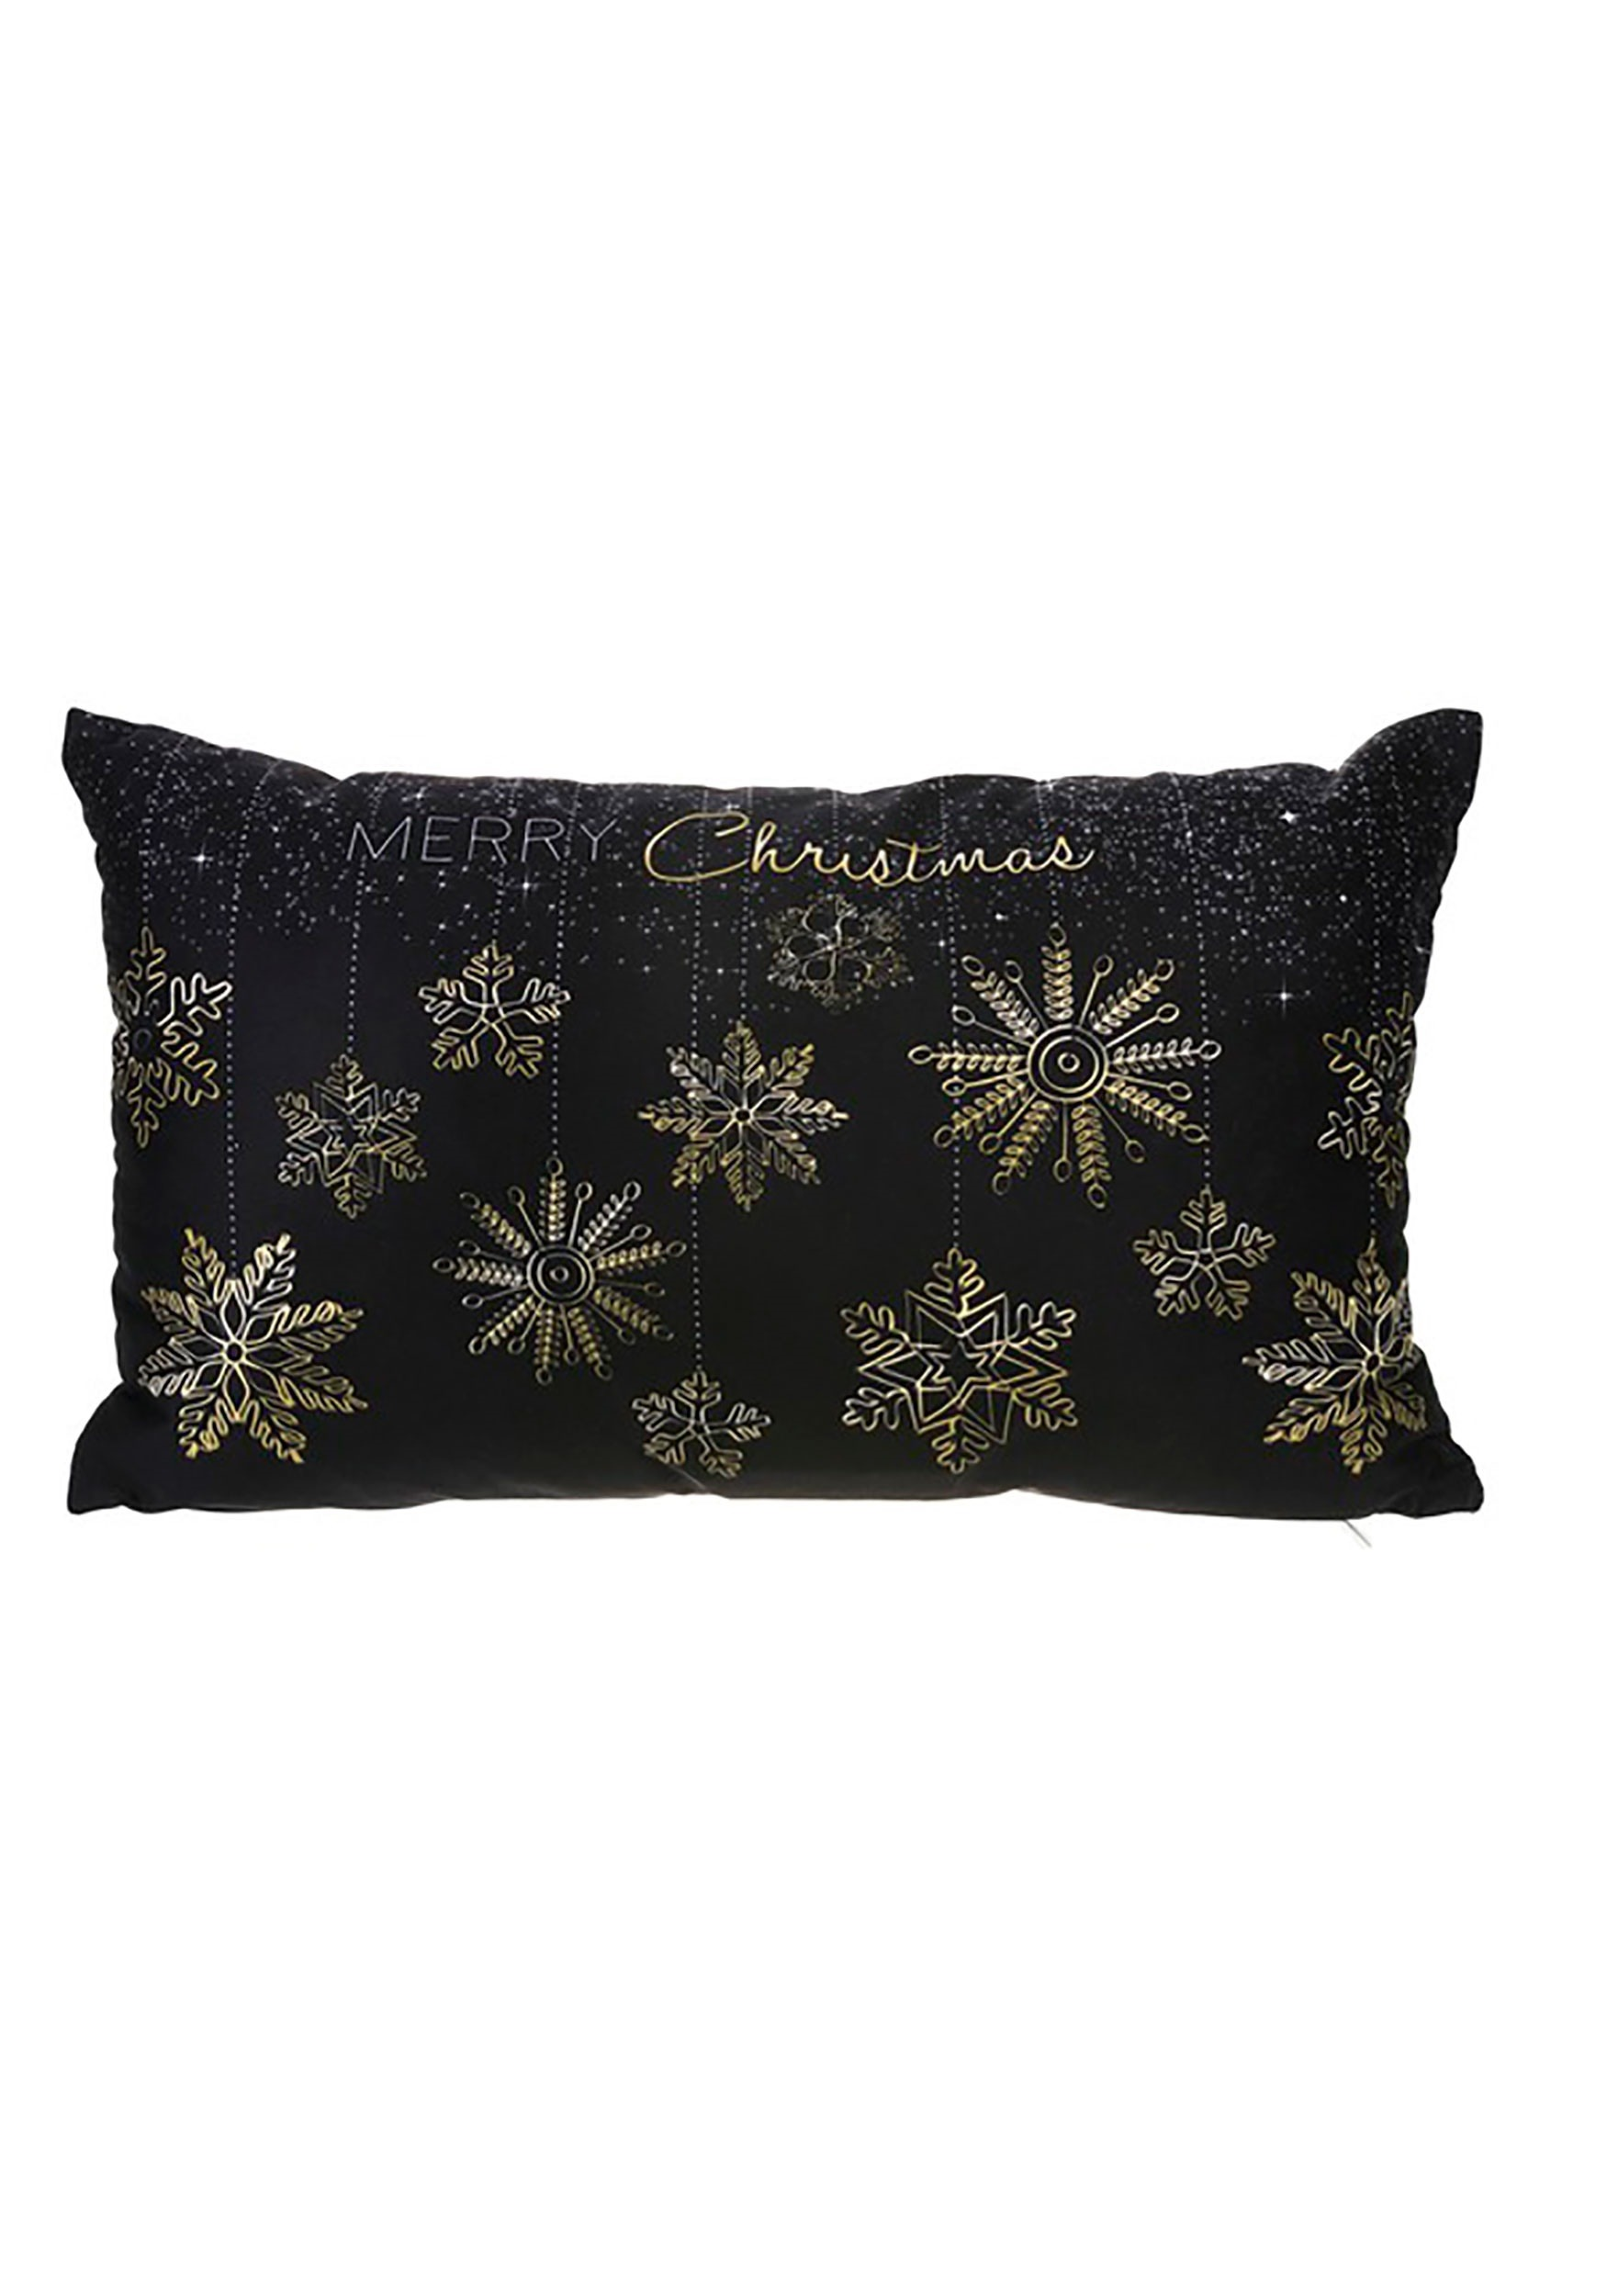 Merry Christmas Golden Snowflakes 19 x 12 Pillow w/LED Lights